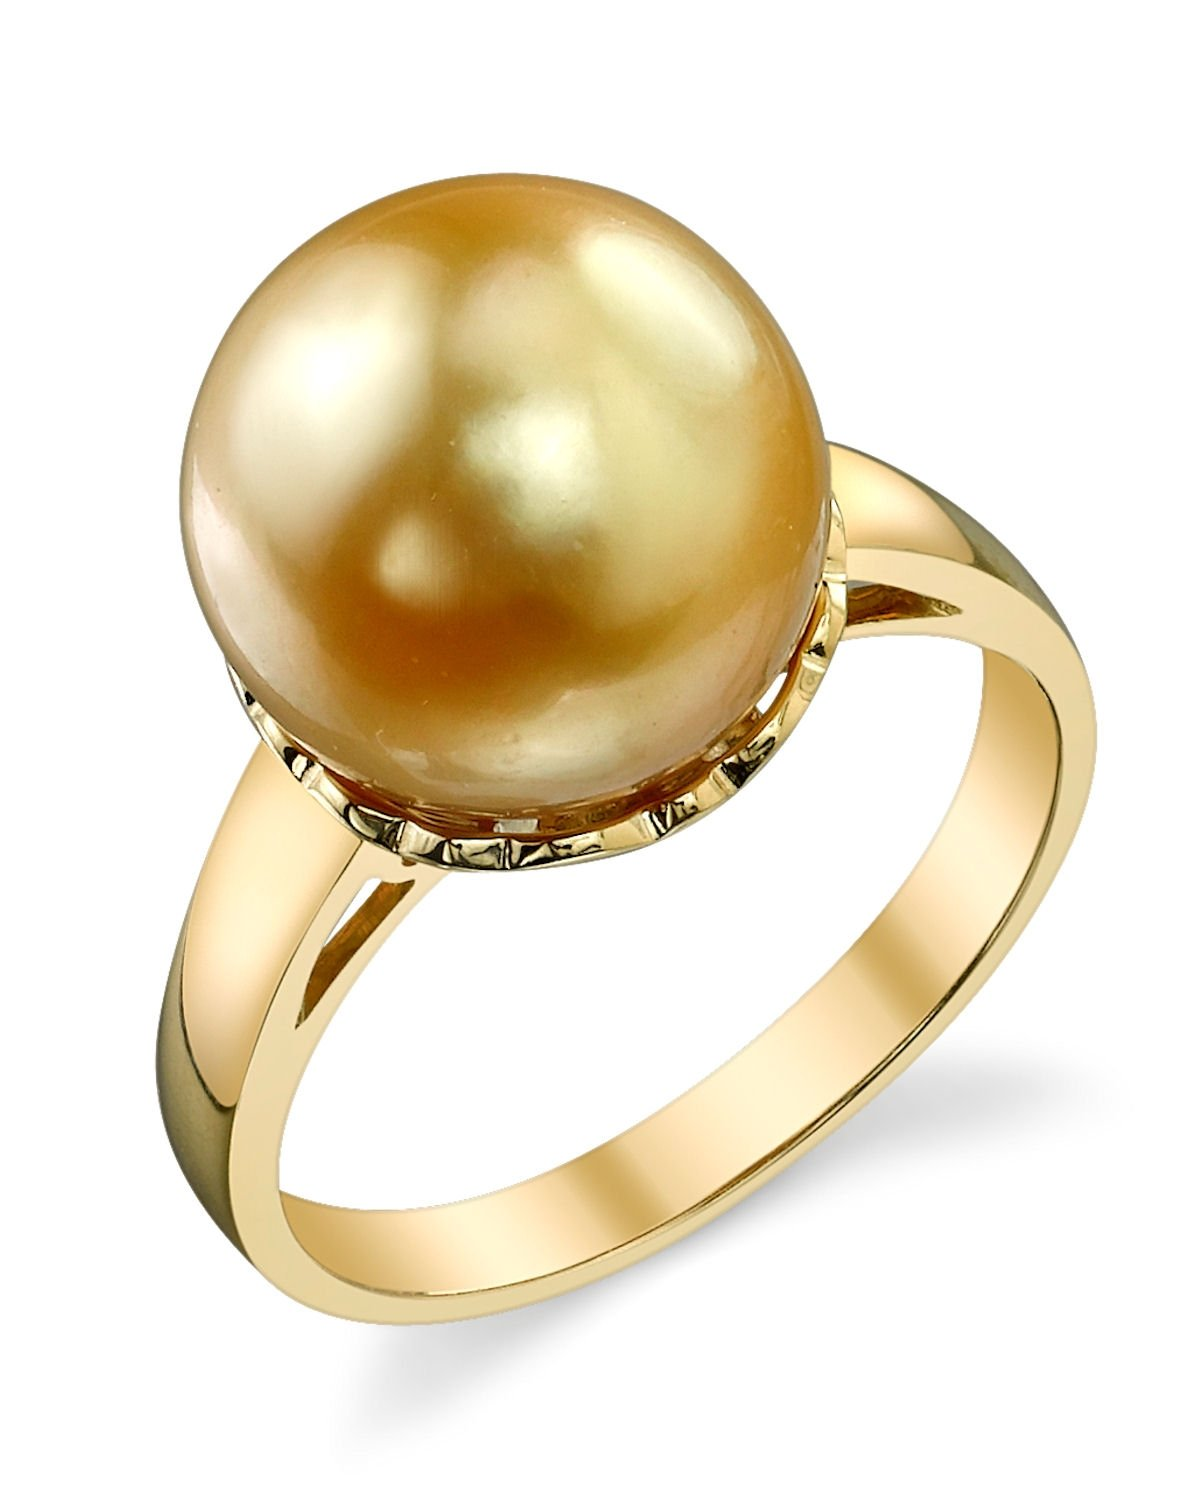 11mm Golden South Sea Cultured Pearl Laurel Ring in 14K Gold